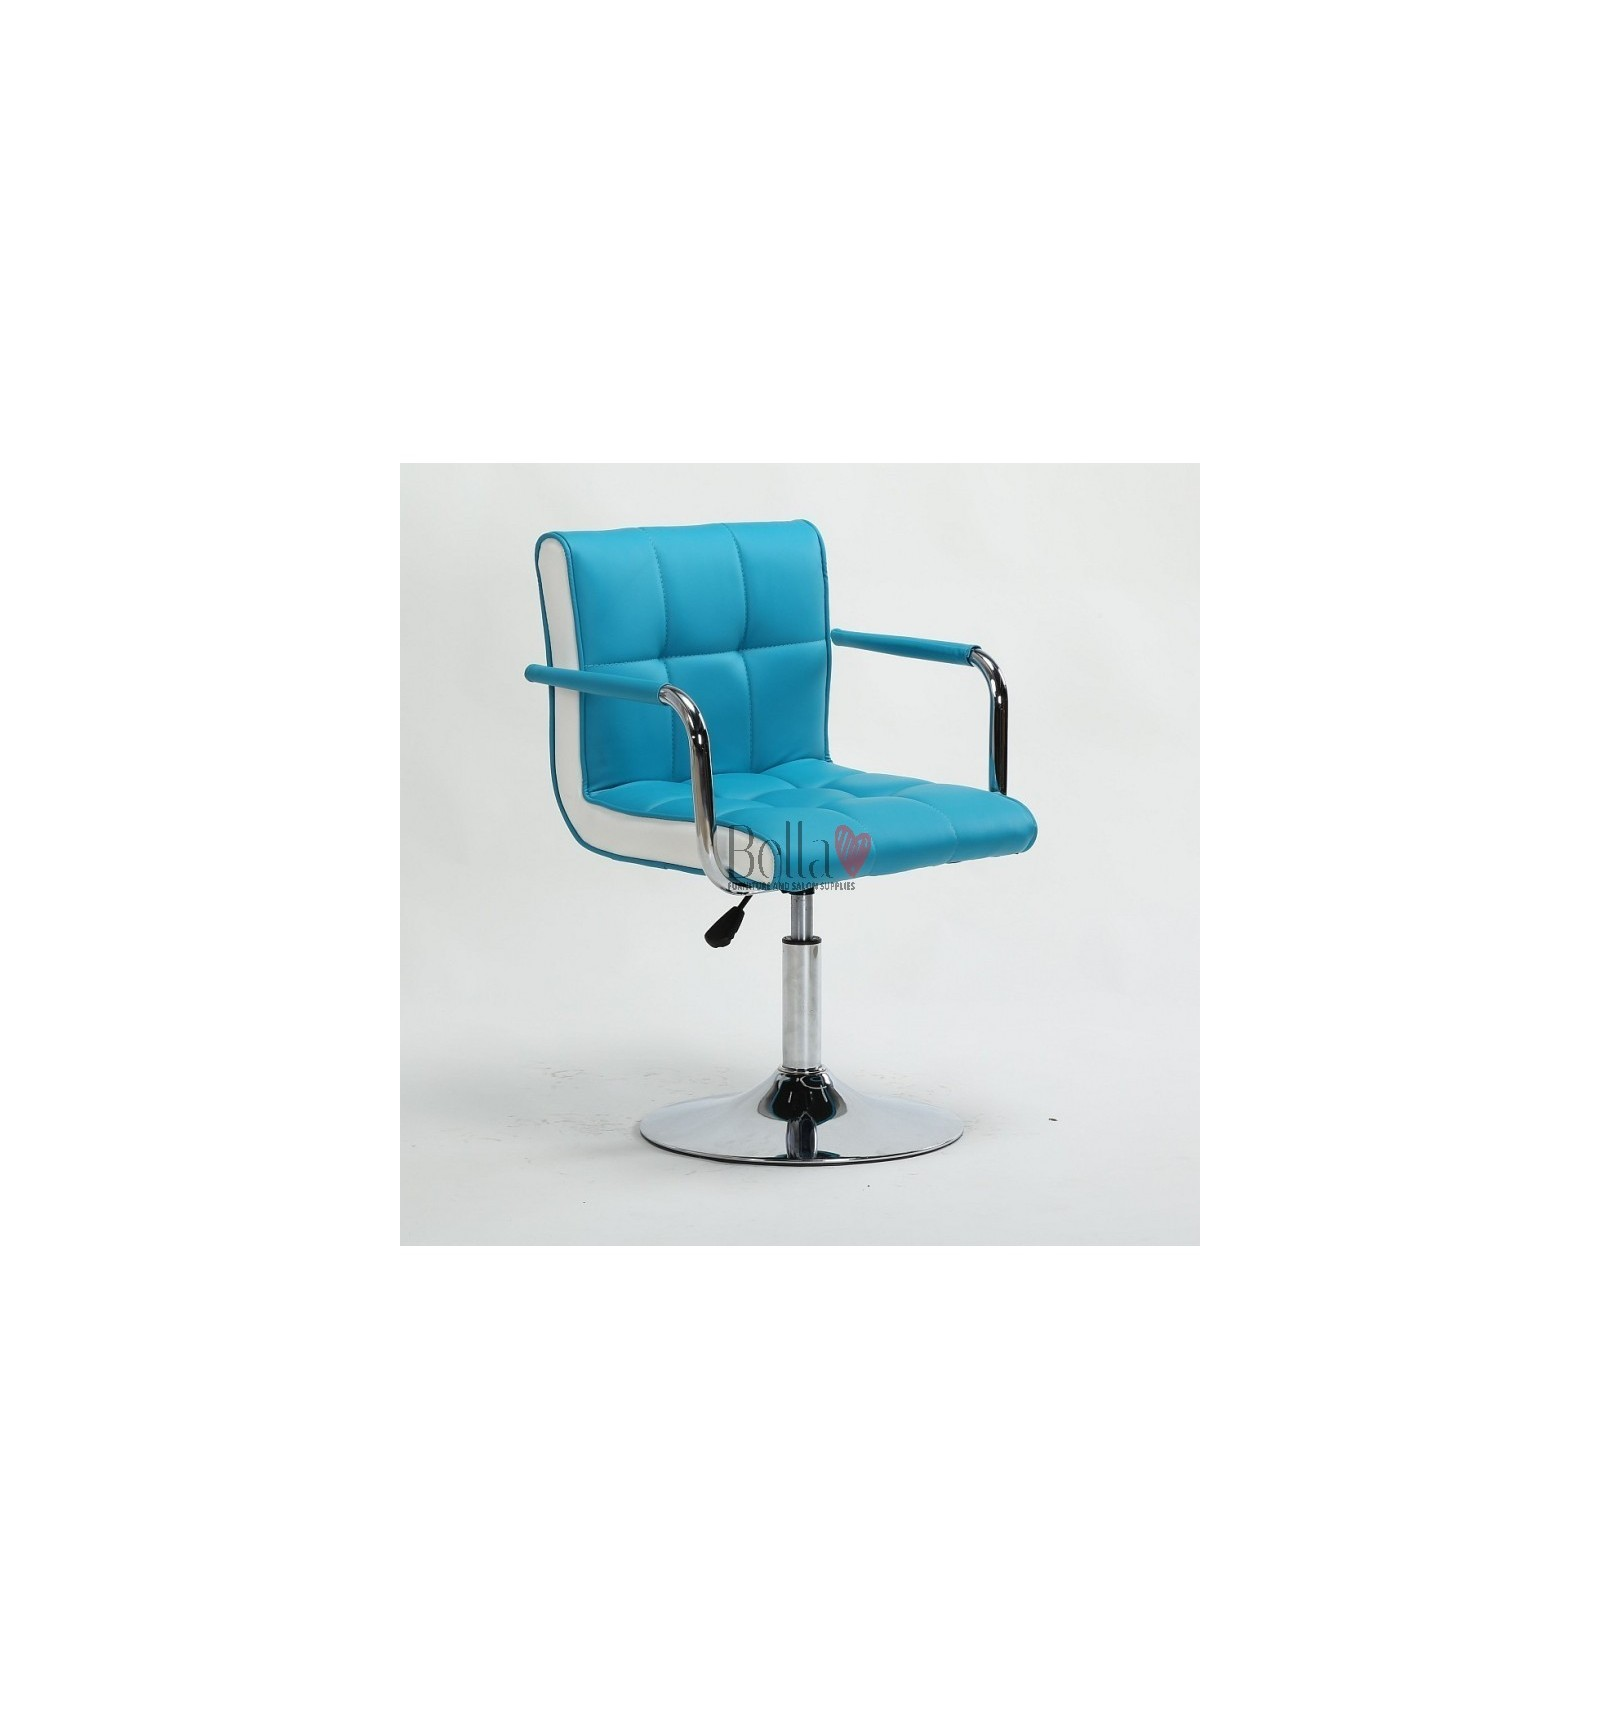 1928ed2e5 Vibrant Turquoise Beauty room or Salon chair. Glam chair for beauty ...